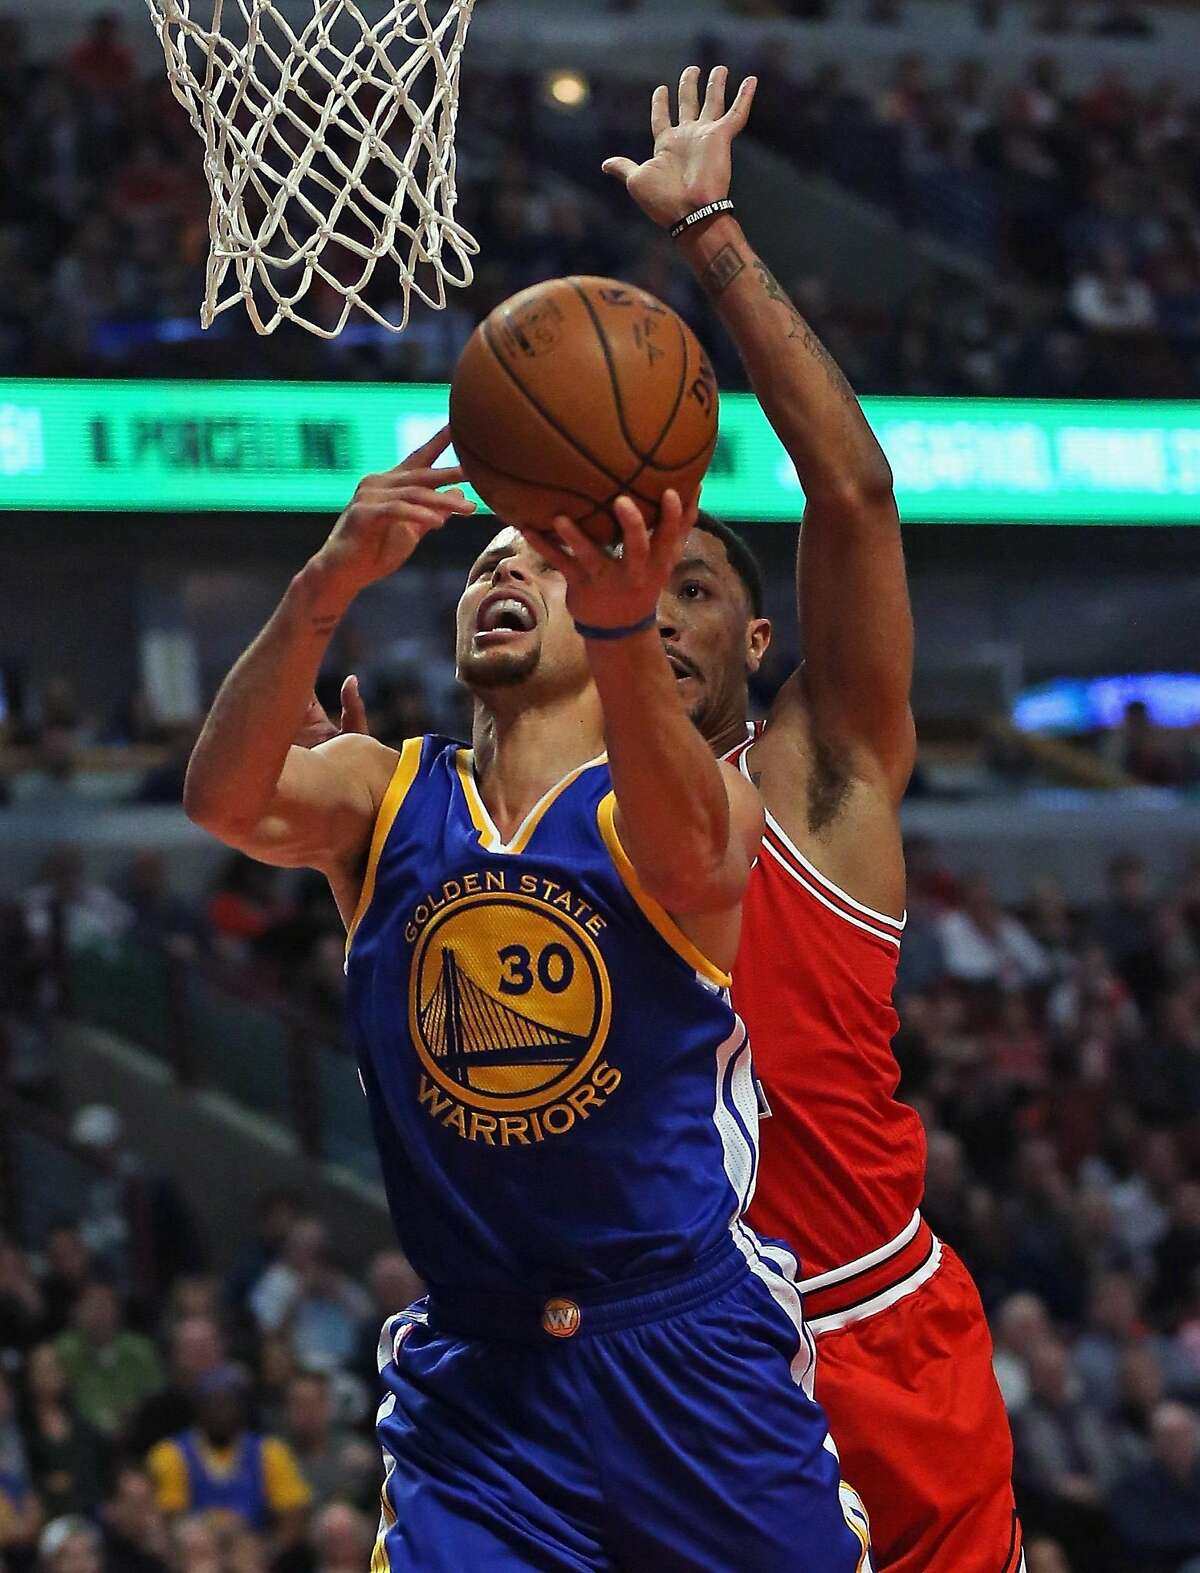 CHICAGO, IL - JANUARY 20: Stephen Curry #30 of the Golden State Warriors puts up a shot under pressure from Derrick Rose #1 of the Chicago Bulls at the United Center on January 20, 2016 in Chicago, Illinois. NOTE TO USER: User expressly acknowledges and agrees that, by downloading and or using the photograph, User is consenting to the terms and conditions of the Getty Images License Agreement. (Photo by Jonathan Daniel/Getty Images)